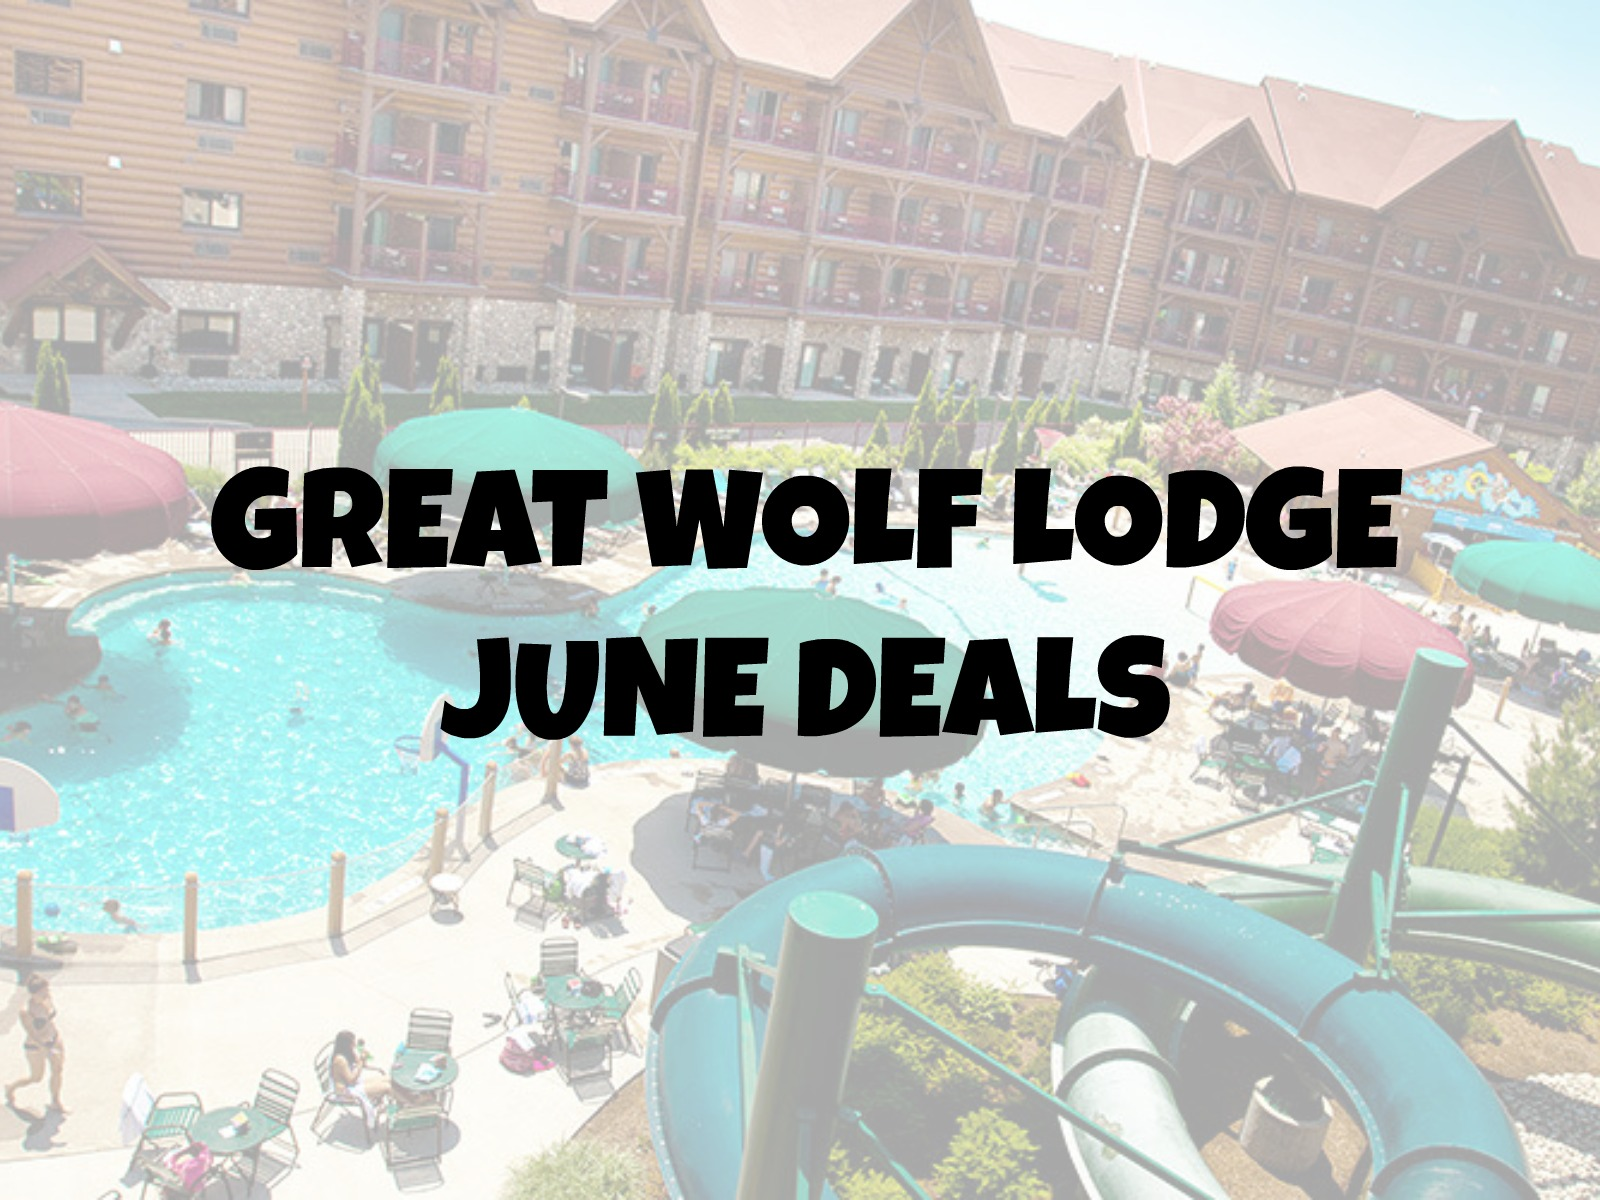 June Great Wolf Lodge Deals